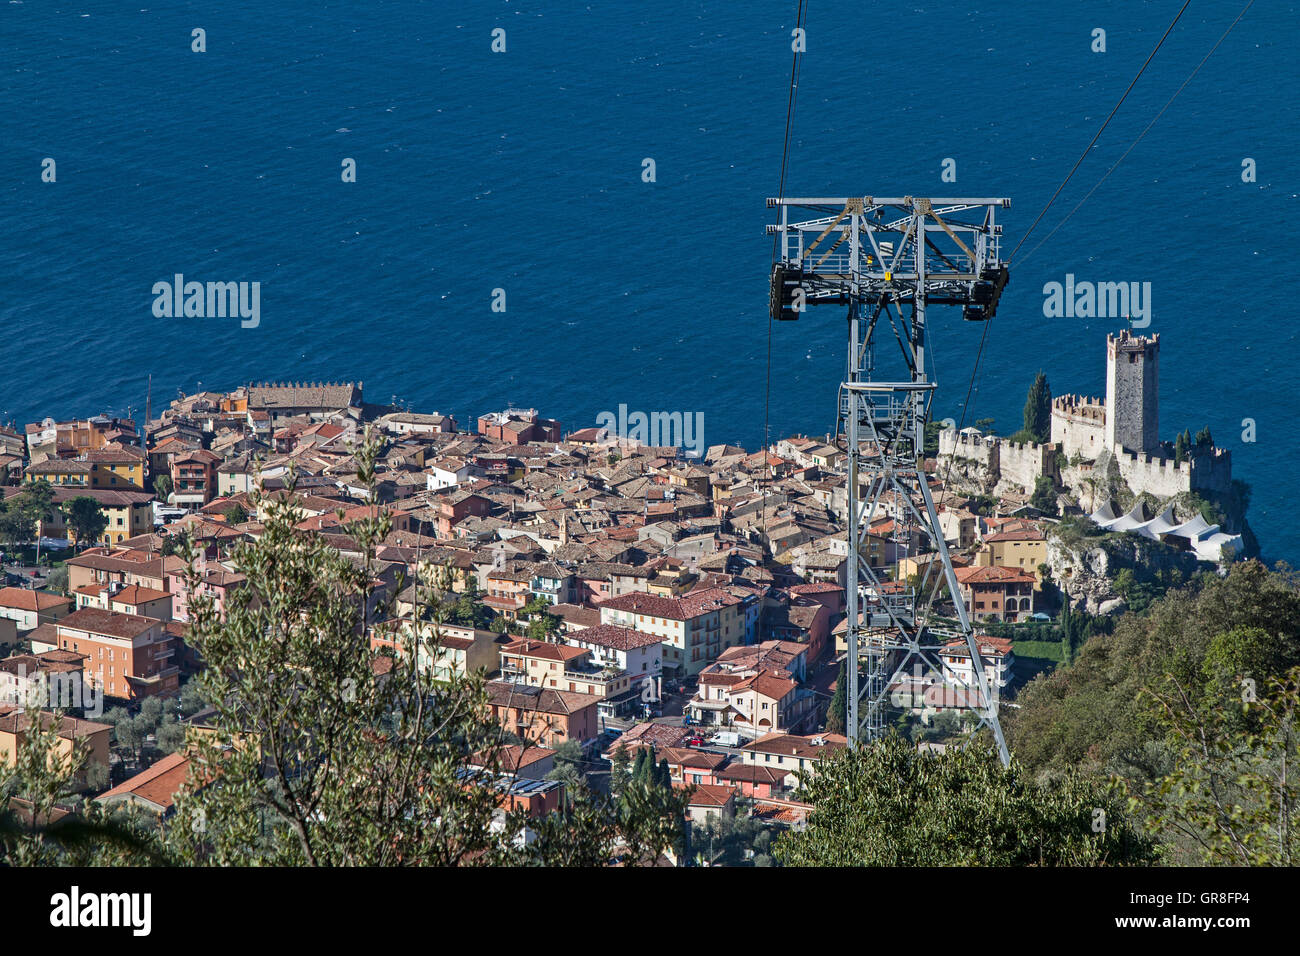 Malcesine Popular And Much-Visited Destination On The Eastern Shore Of Lake Garda - Stock Image